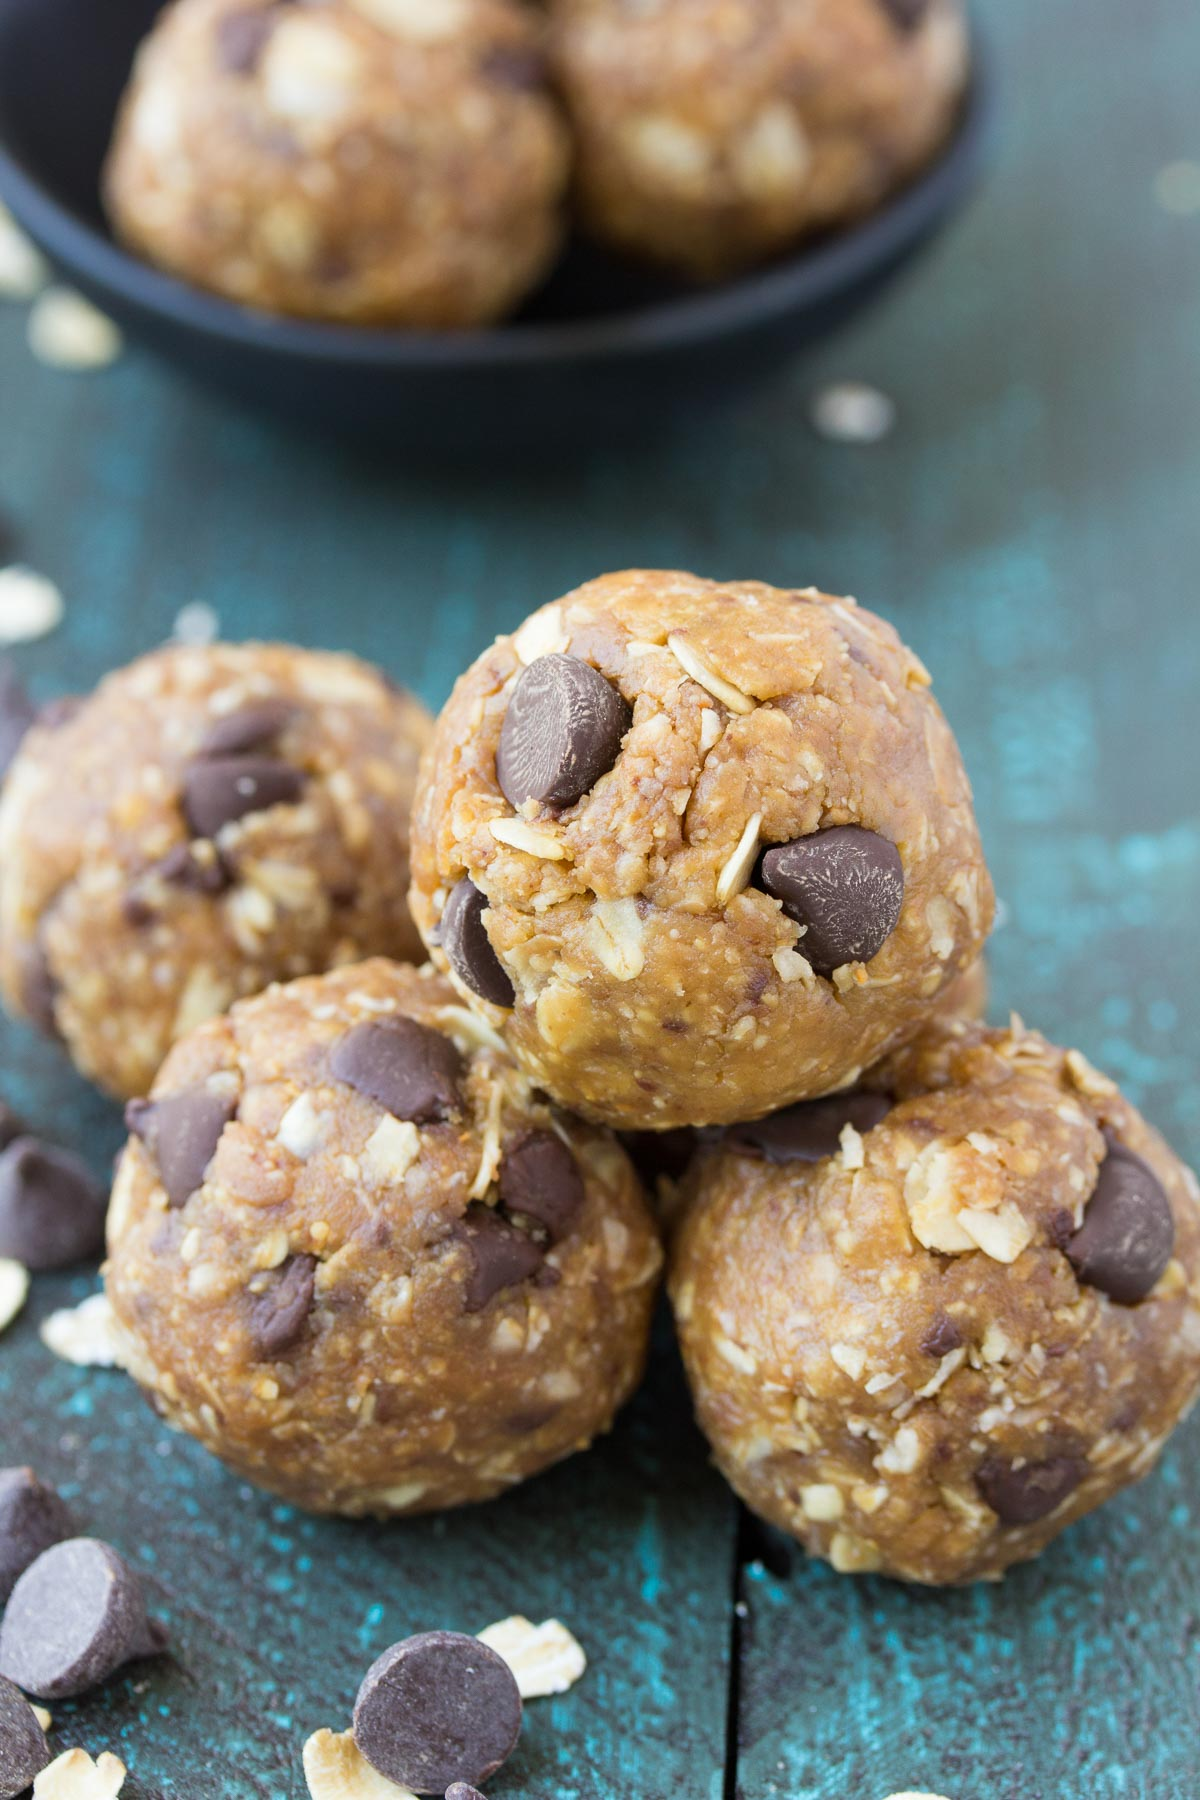 These Peanut Butter Chocolate Chip Cookie Energy Bites are our FAVORITE energy bite! They taste like little bites of (healthy) cookie dough! No bake, gluten free, refined sugar free. | www.kristineskitchenblog.com